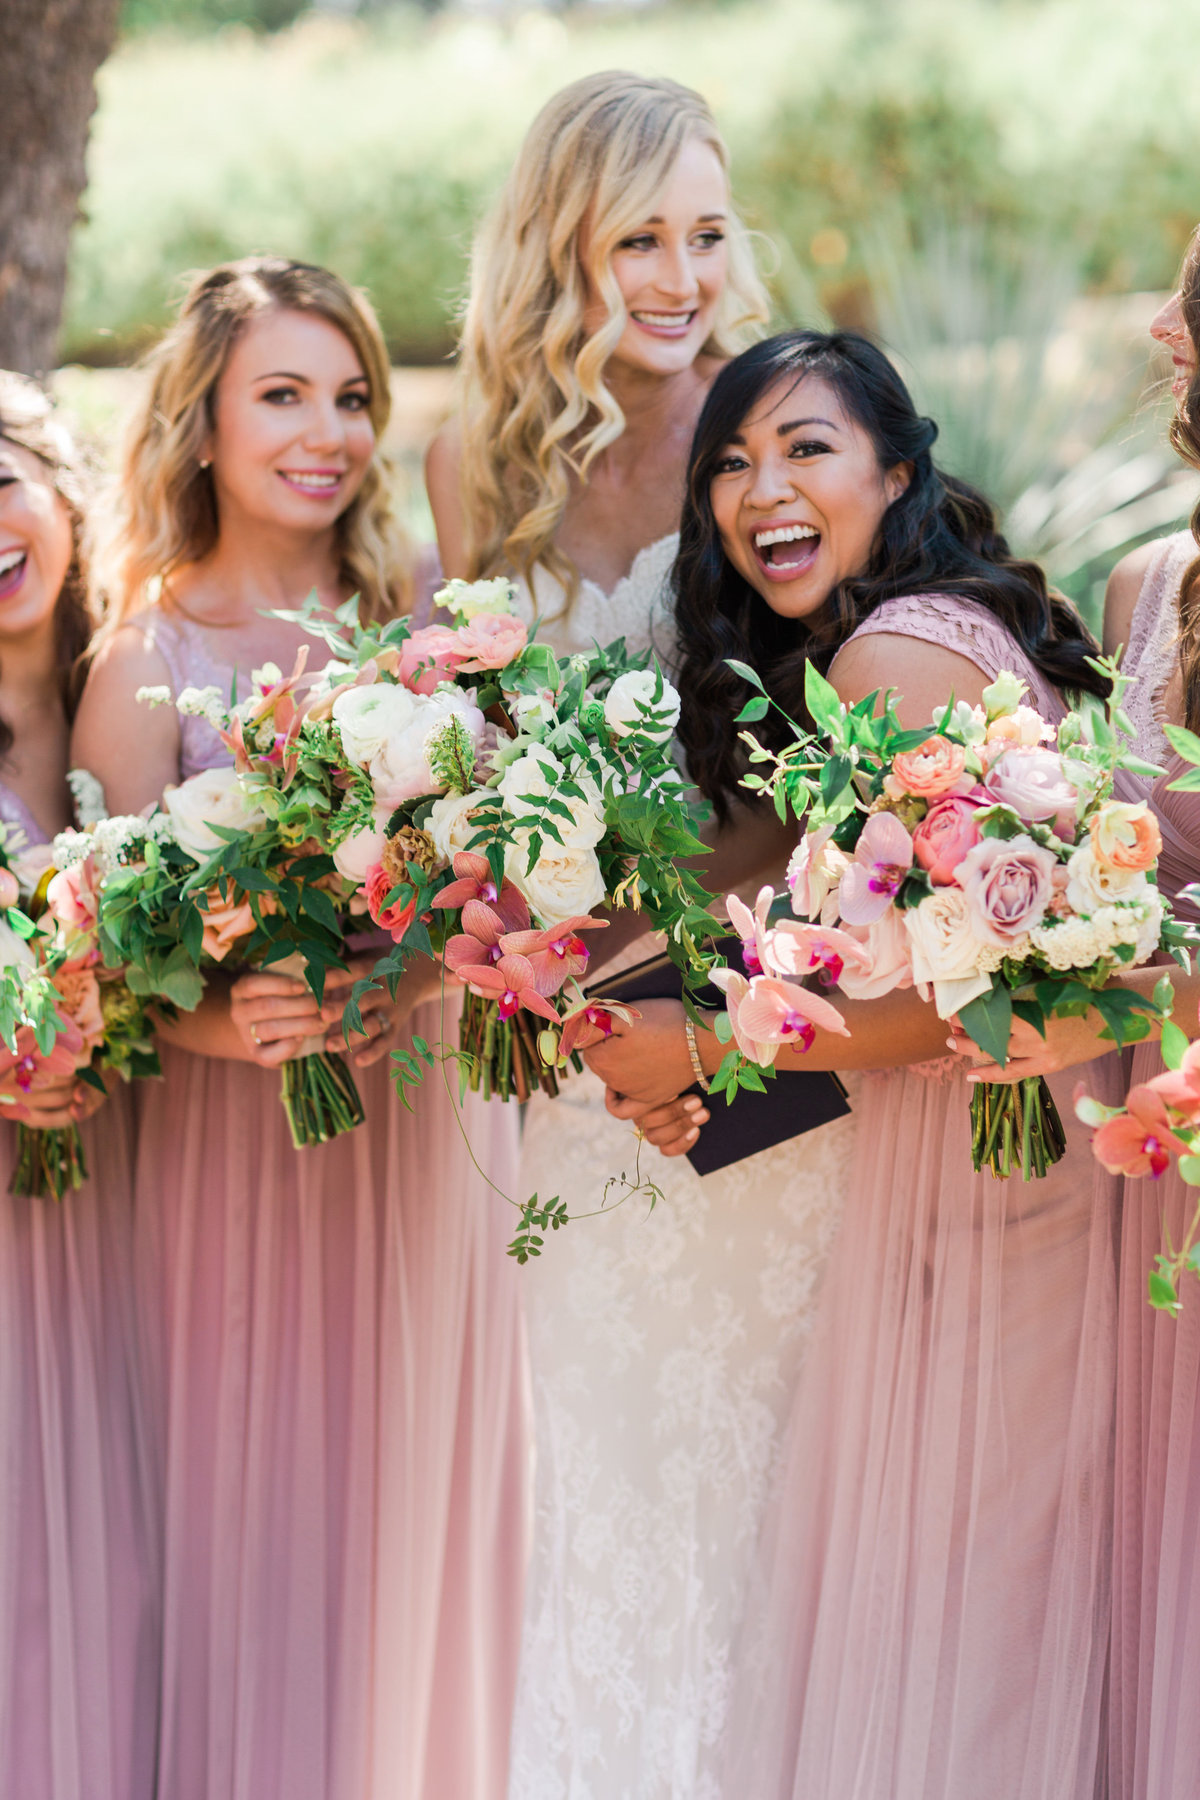 Quail_Ranch_Blush_California_Wedding_Valorie_Darling_Photography - 49 of 151